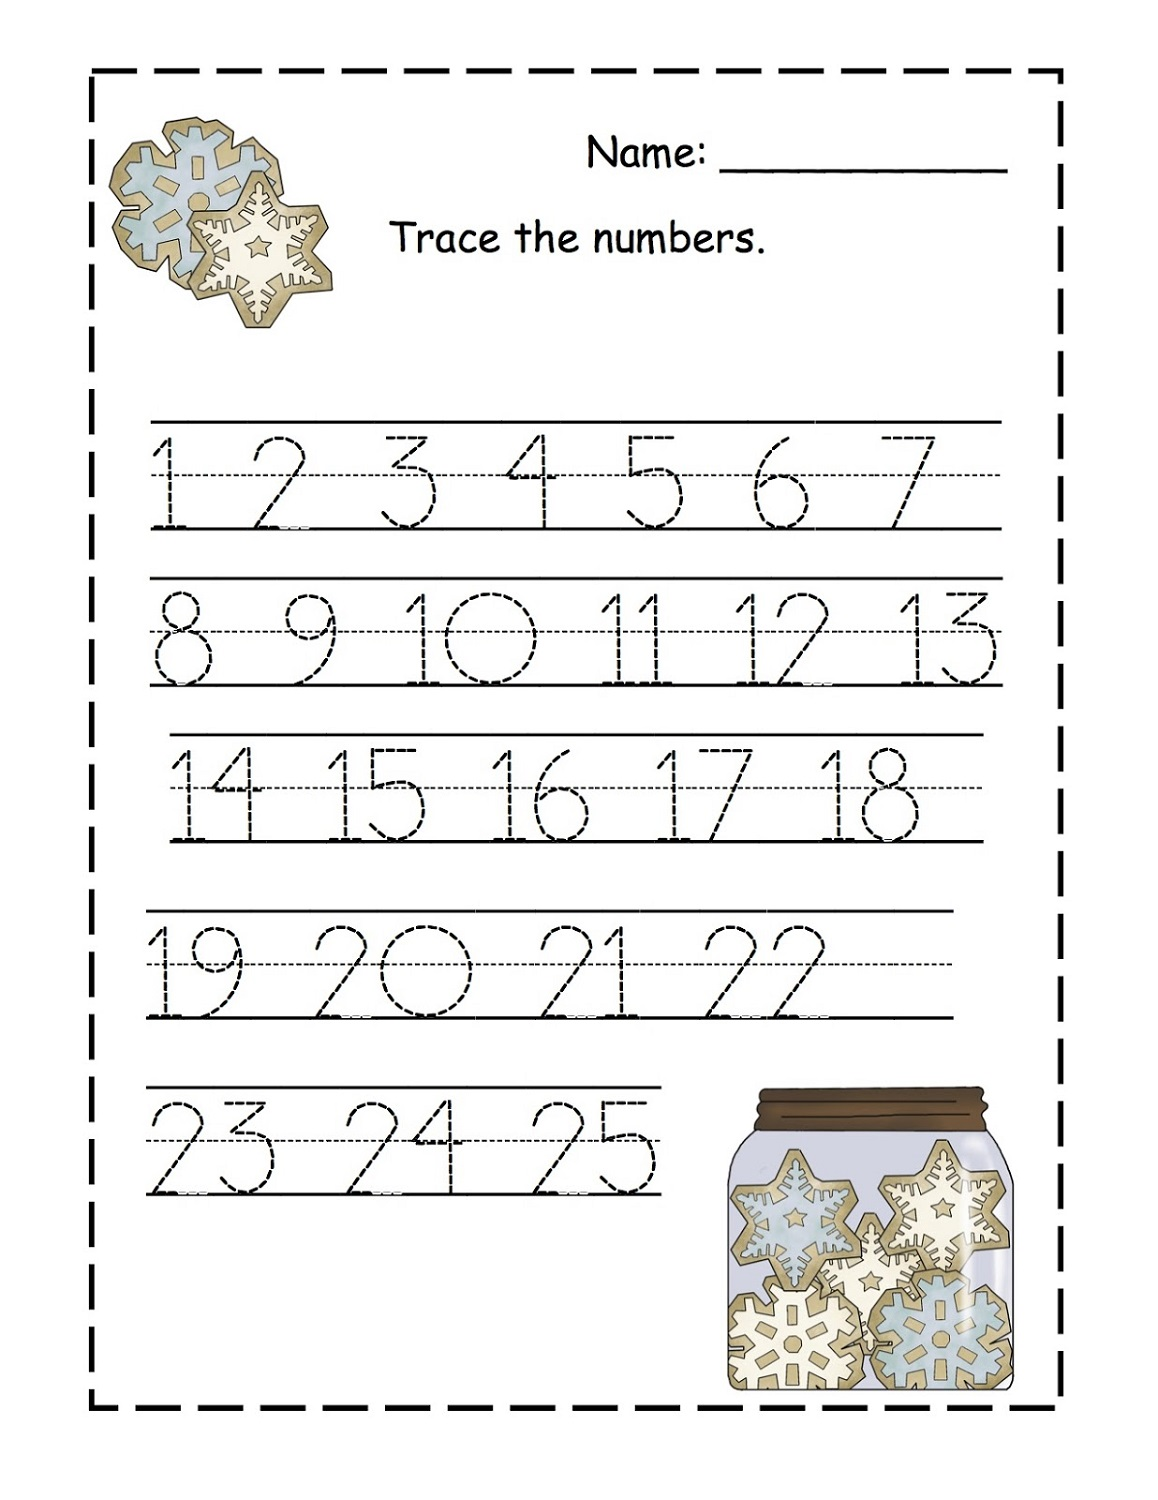 trace the numbers worksheet